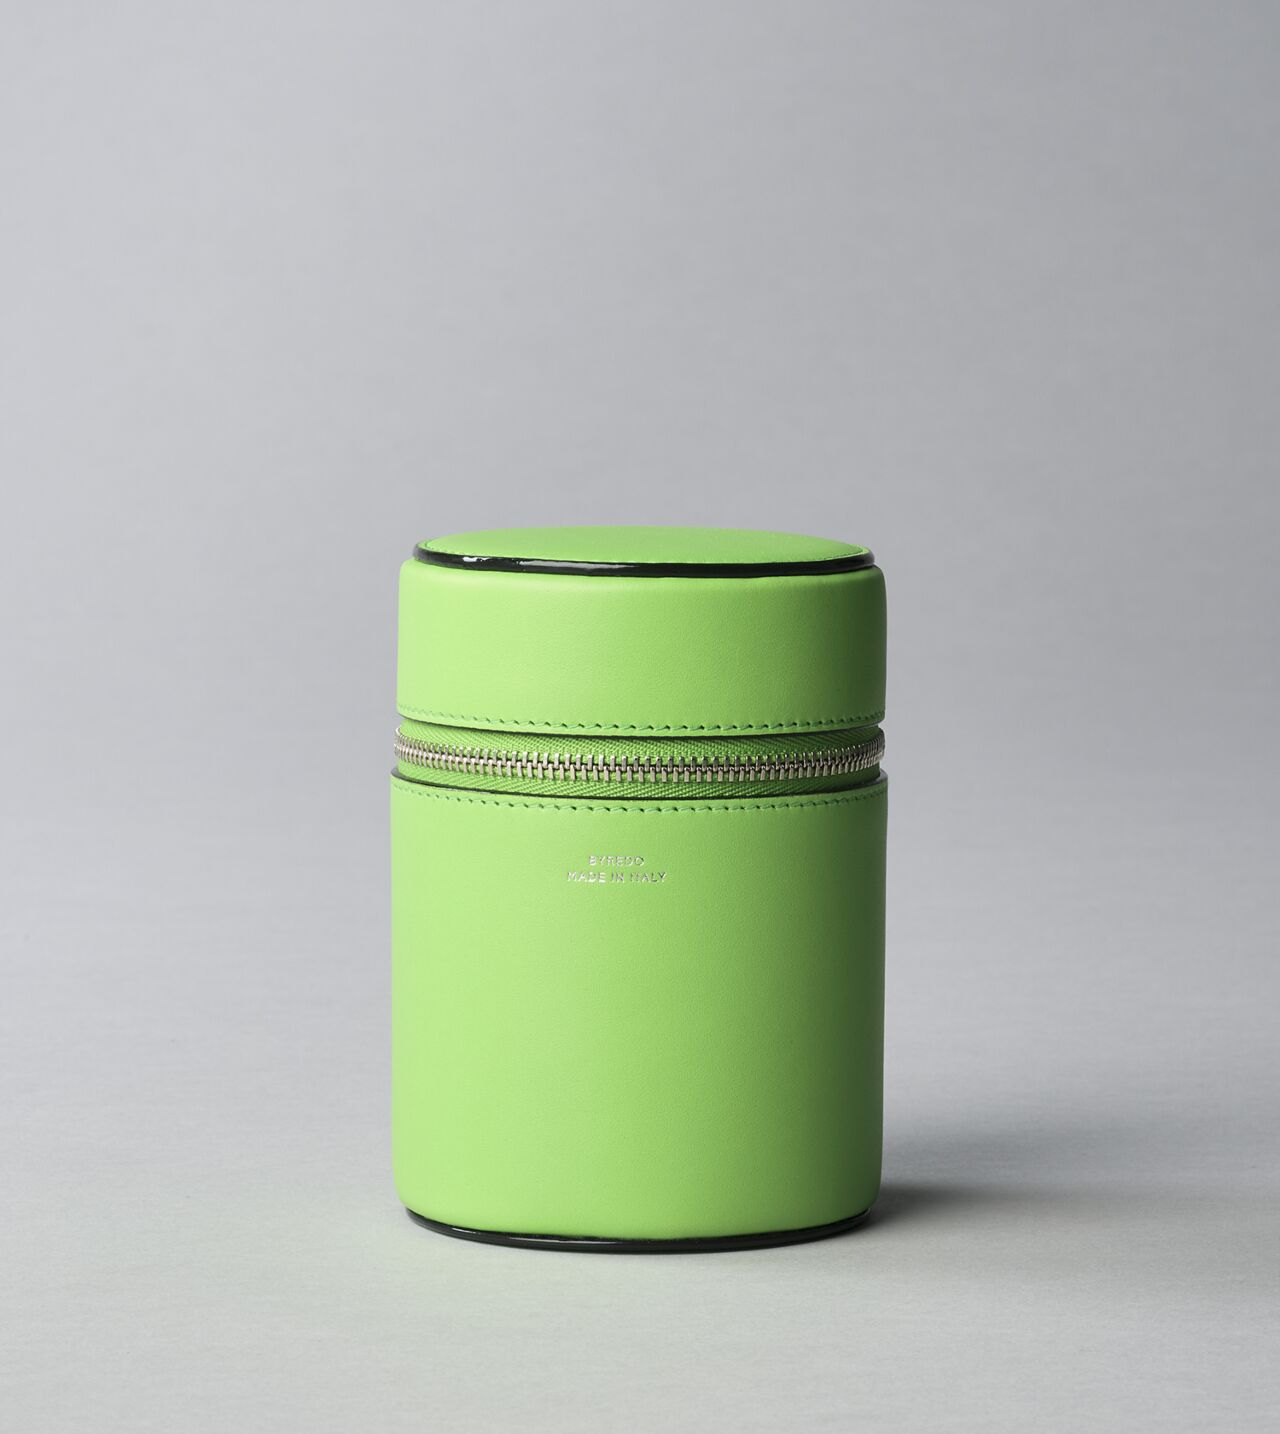 Picture of Byredo Candle holder 240g in Green leather